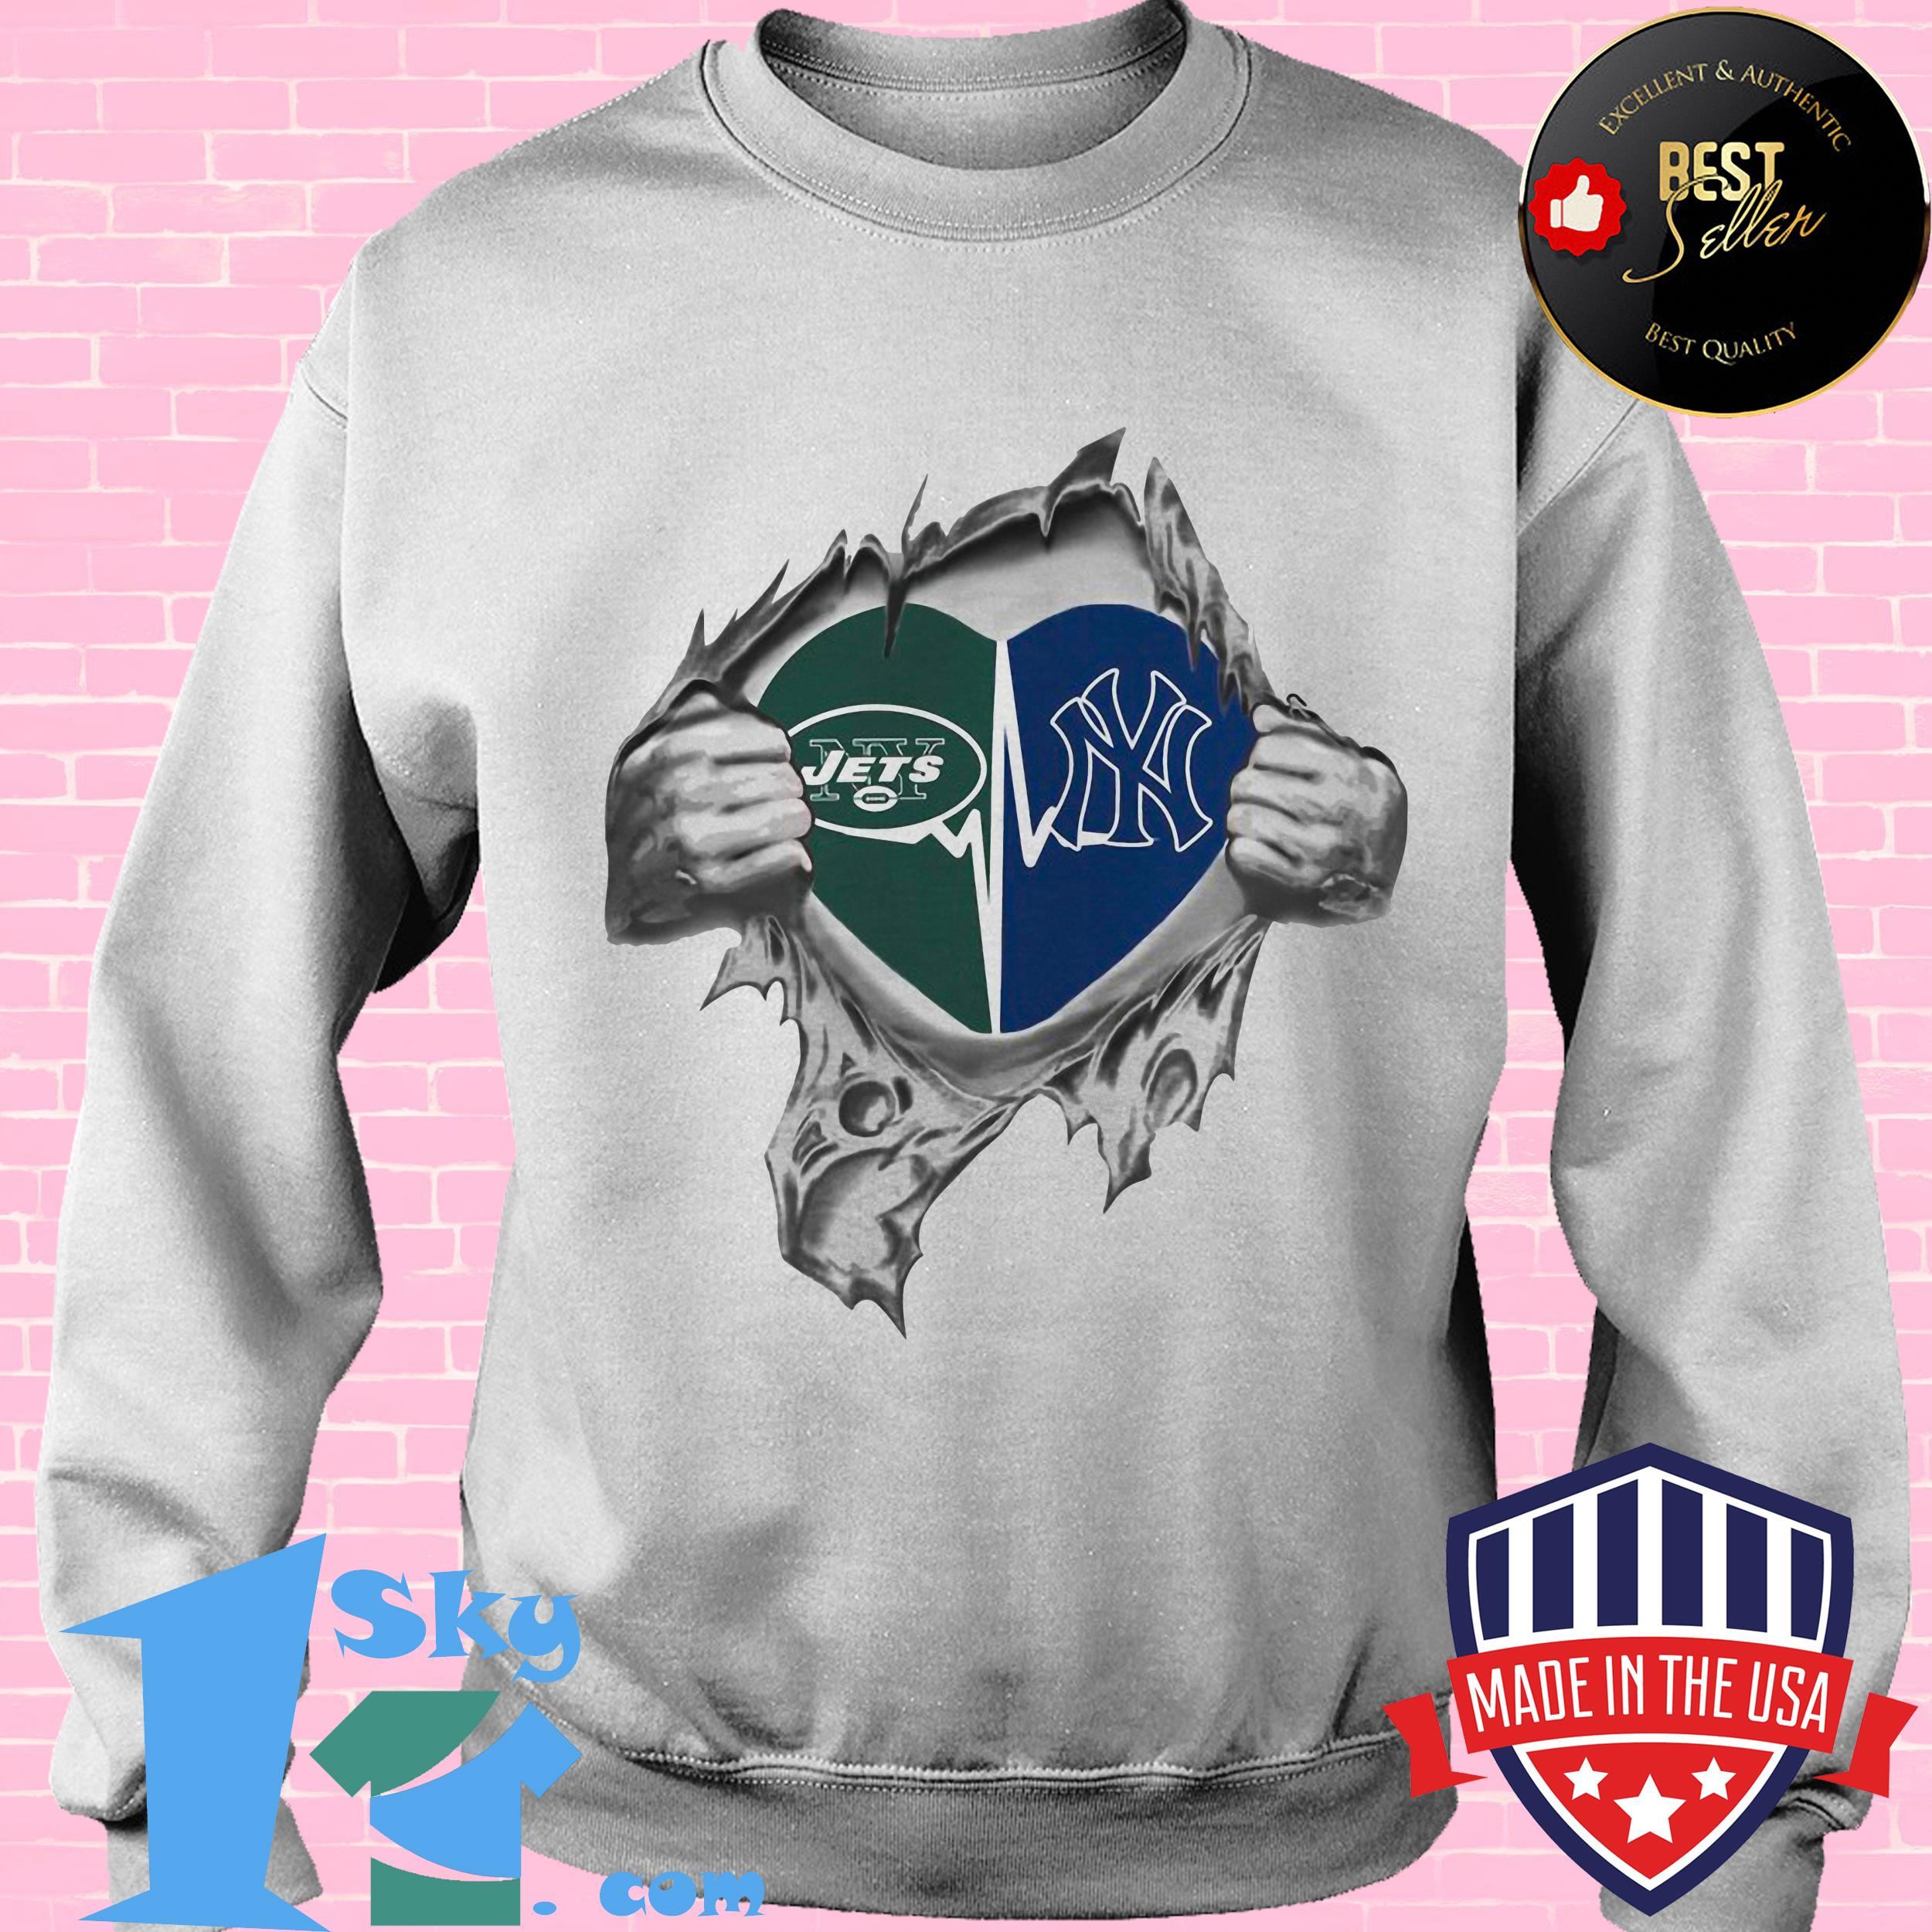 jets yankees its in my heart inside me sweatshirt - Jets Yankees It's In My Heart Inside Me shirt